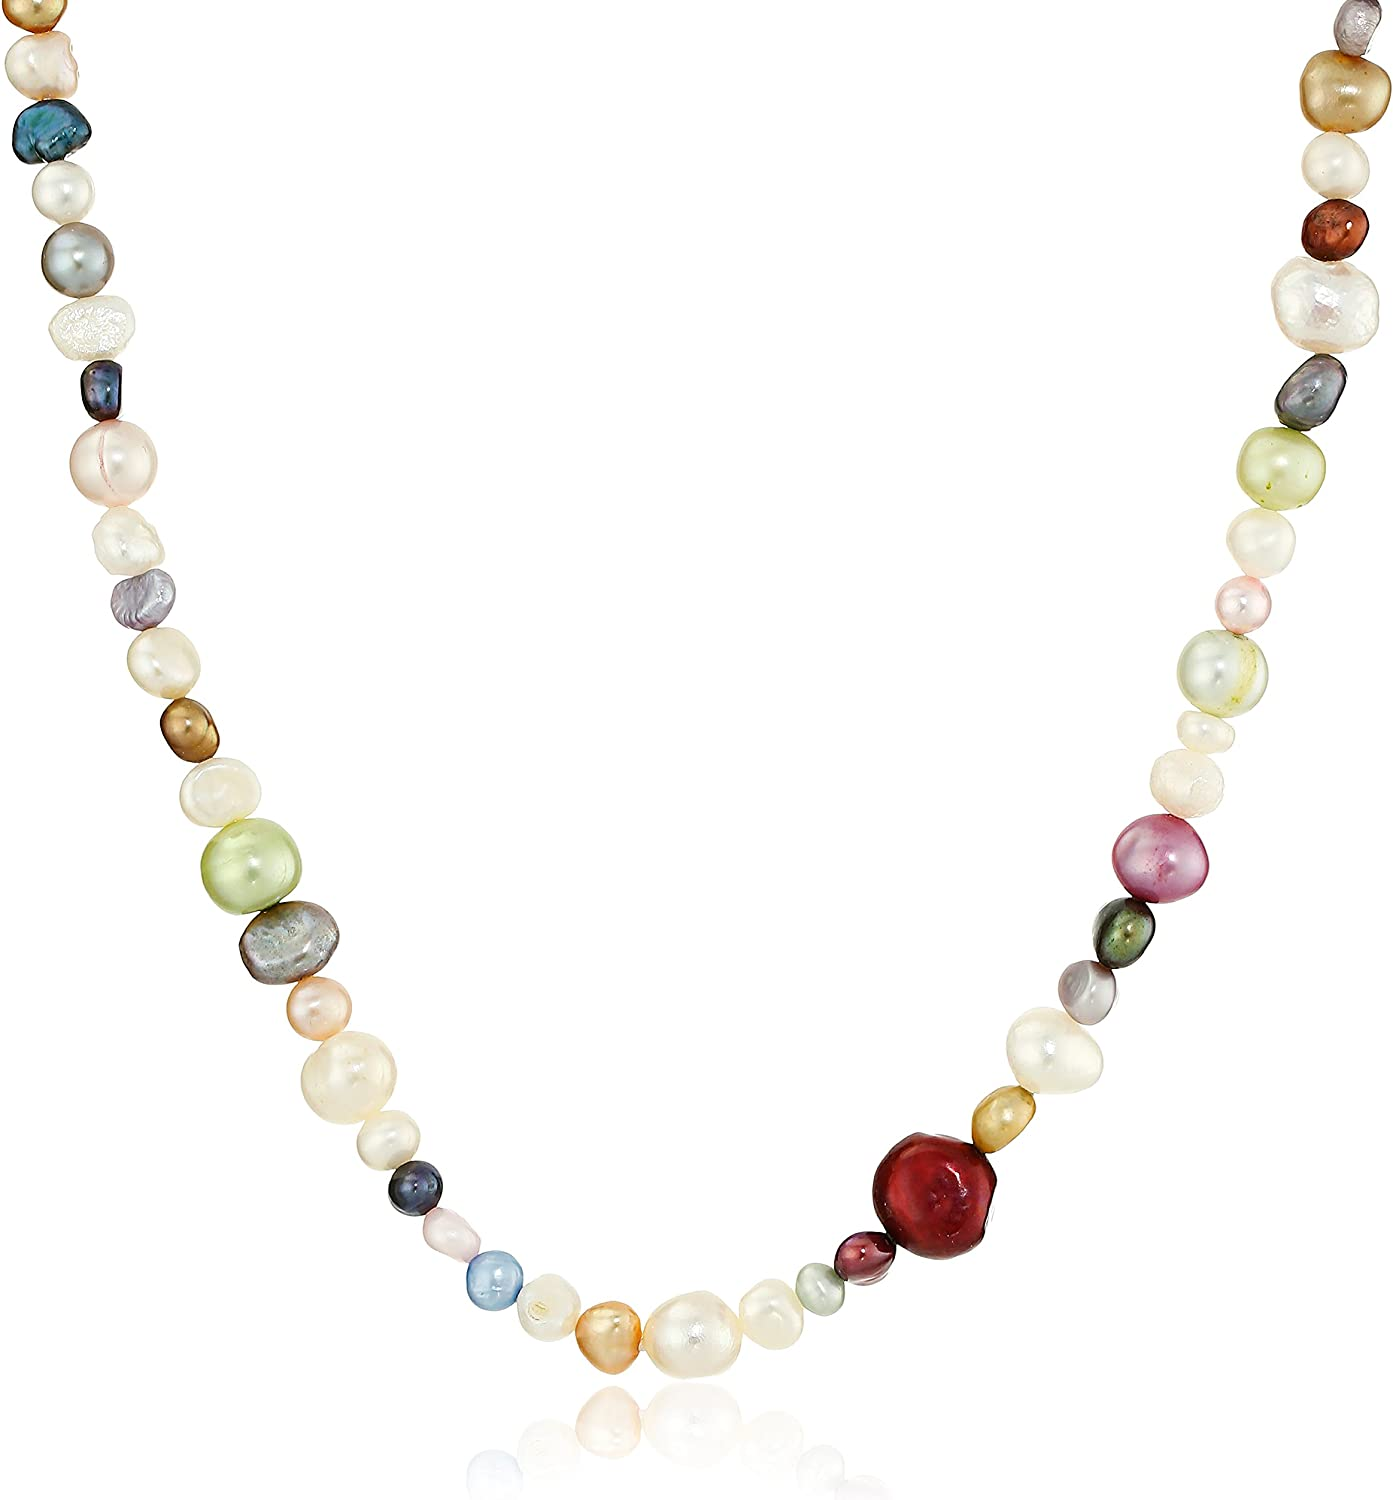 Multicolor Bright Freshwater Cultured Endless Pearl Strand, 66